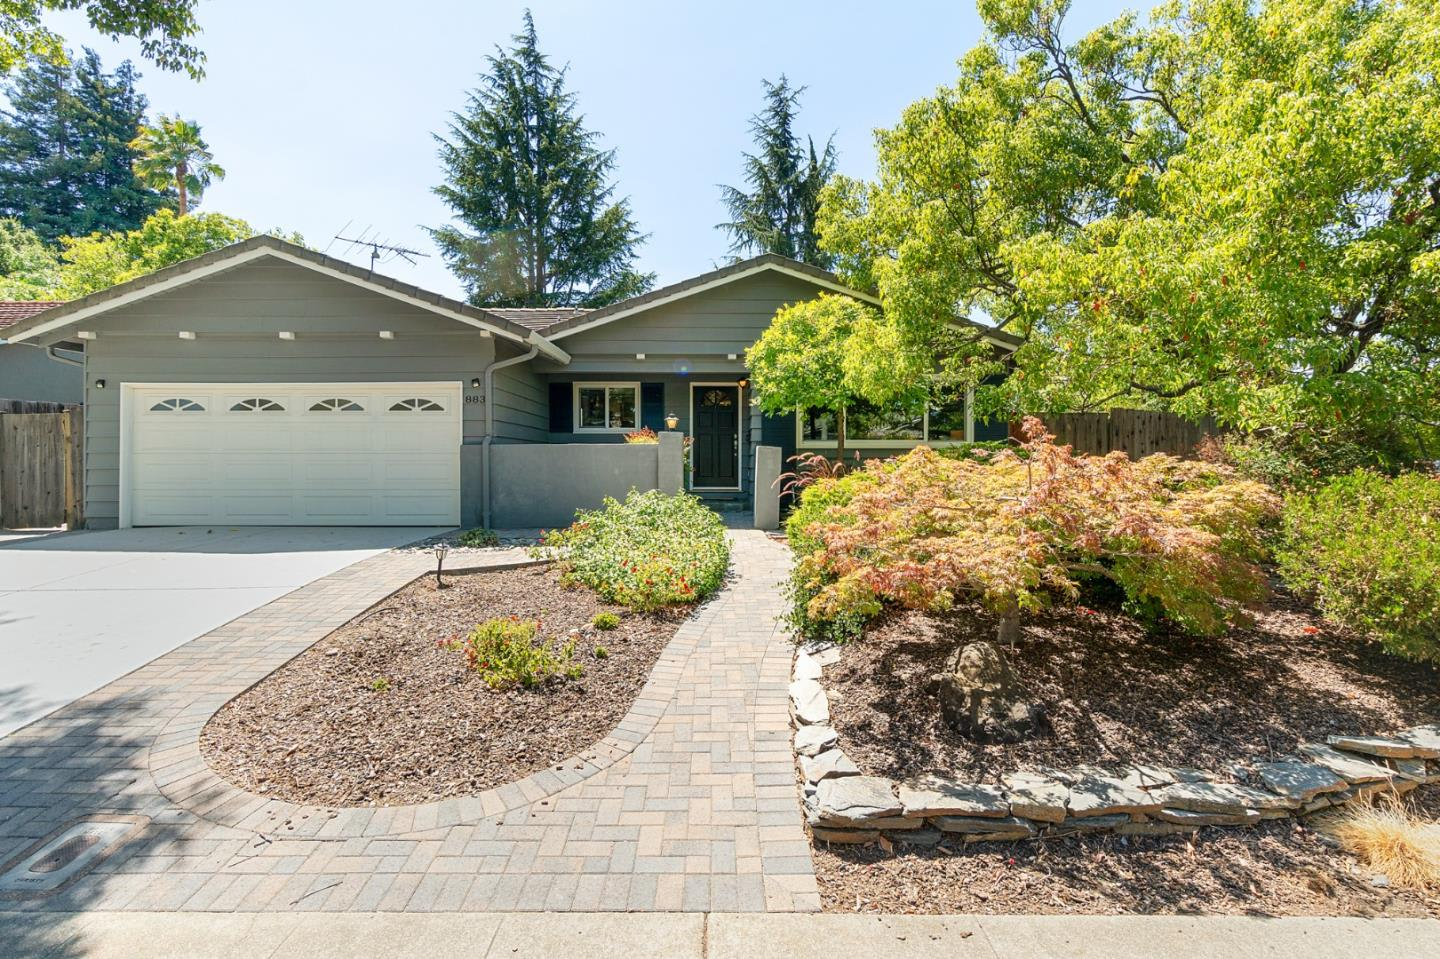 883 Roble Dr photo